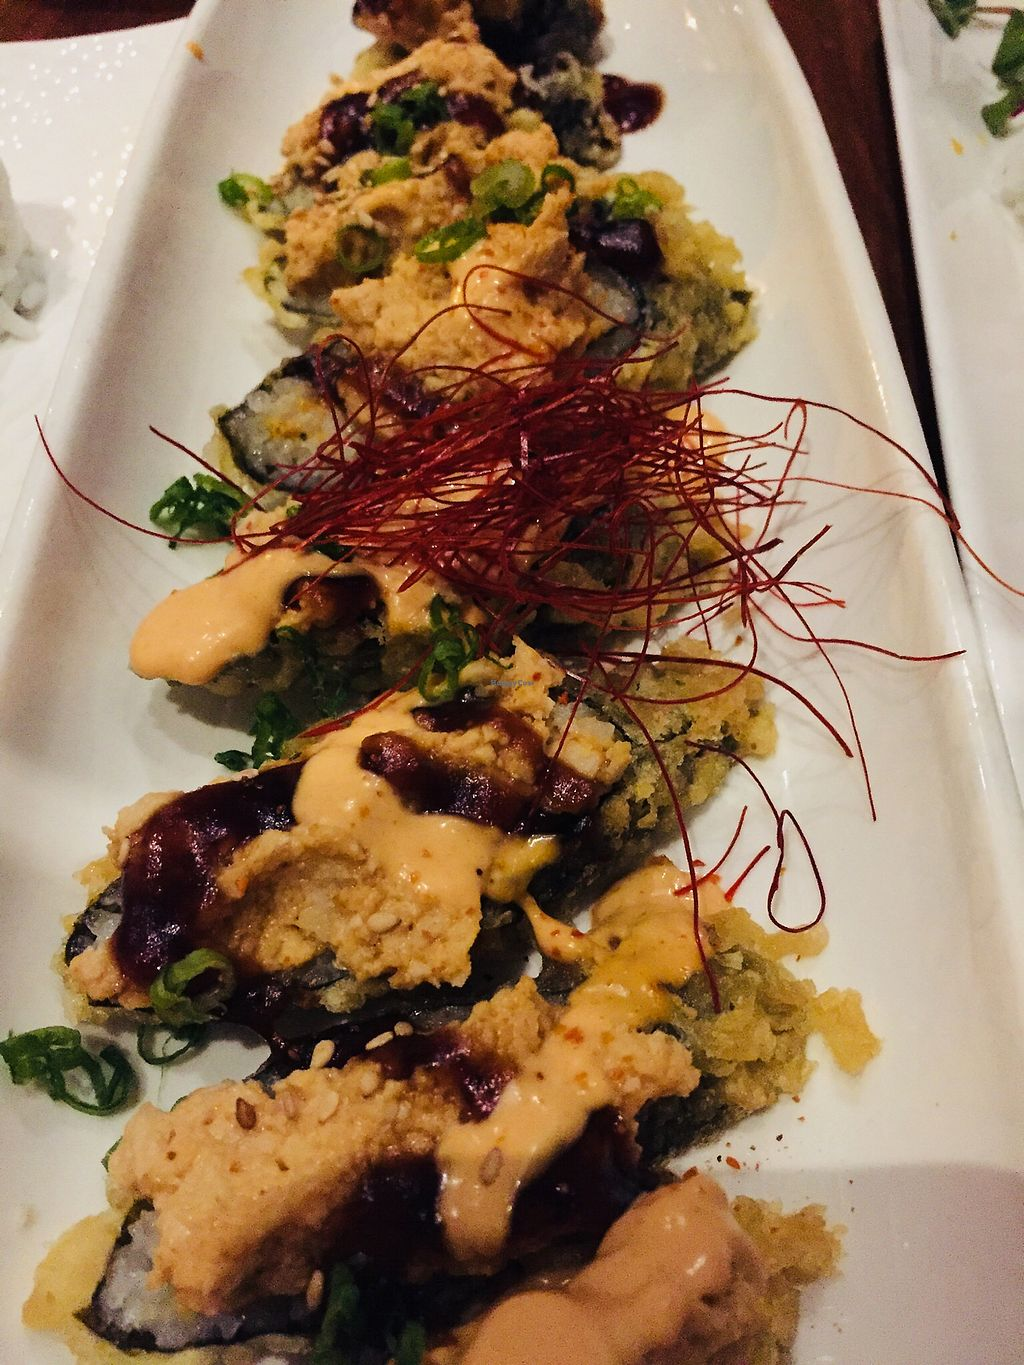 """Photo of Shizen Vegan Sushi Bar  by <a href=""""/members/profile/TheVeganNarwhal"""">TheVeganNarwhal</a> <br/>Don't remember the name of this one but it was good! <br/> February 12, 2018  - <a href='/contact/abuse/image/54689/358226'>Report</a>"""